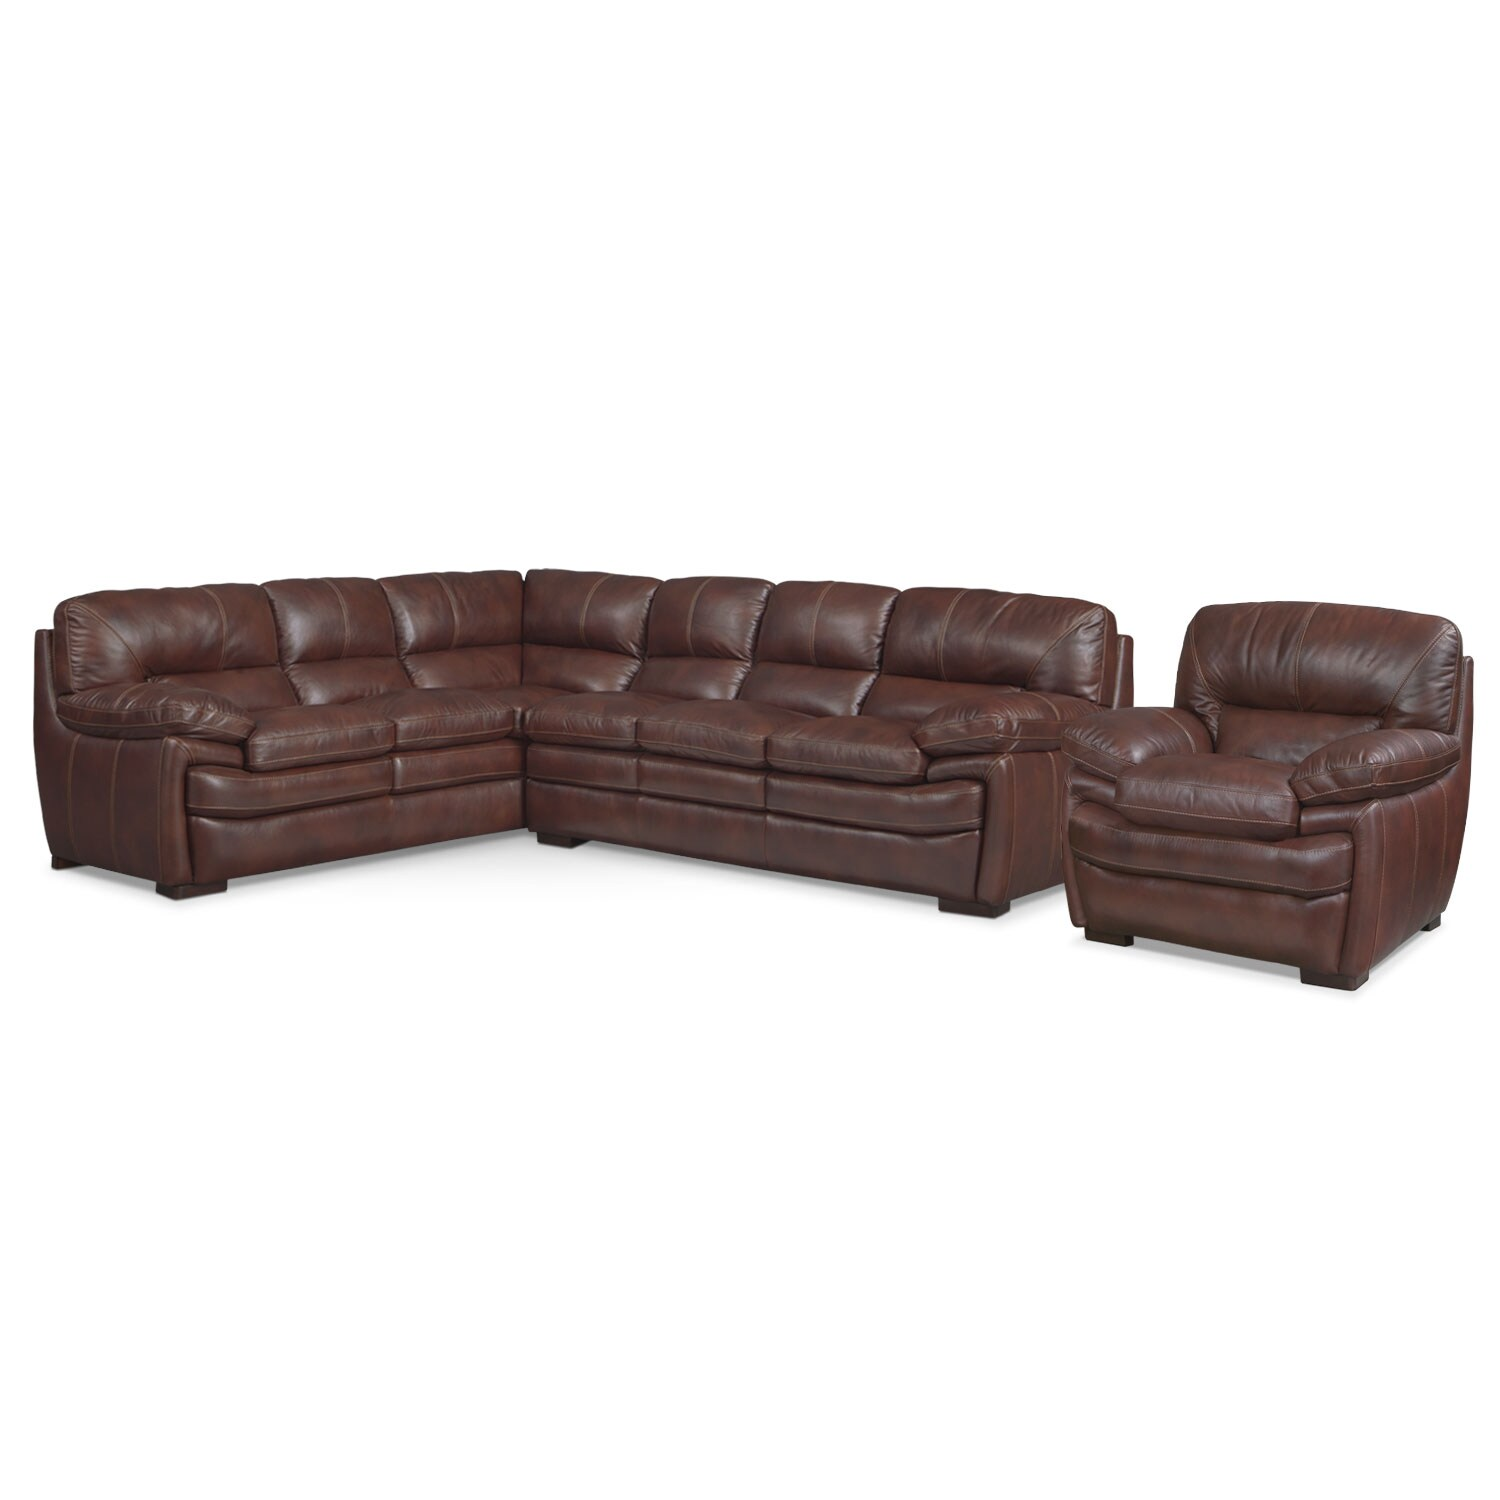 [Peyton Chestnut 2 Pc. Sectional and Chair]